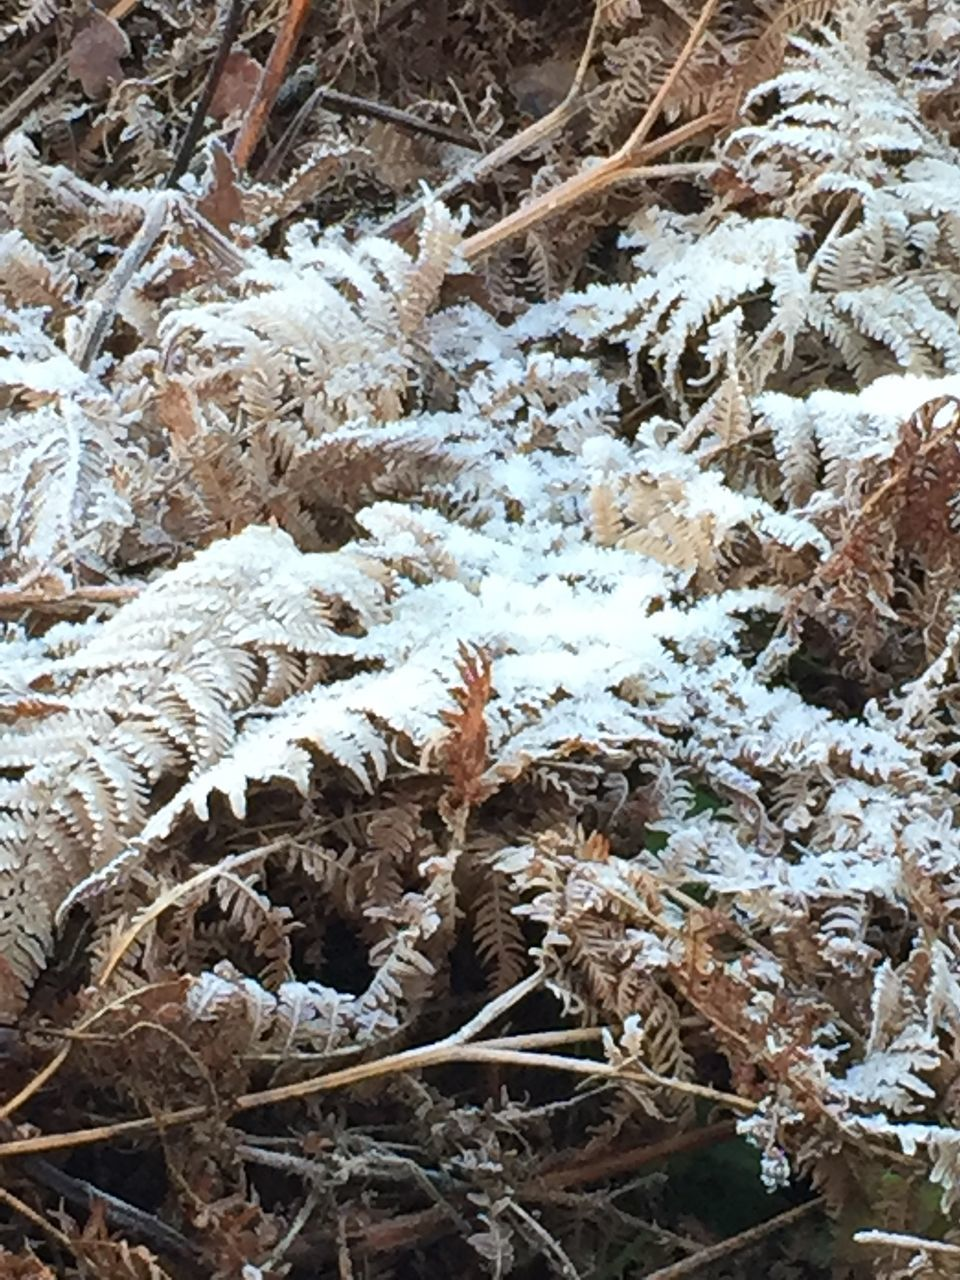 winter, nature, cold temperature, snow, day, outdoors, no people, field, frozen, plant, growth, beauty in nature, close-up, fragility